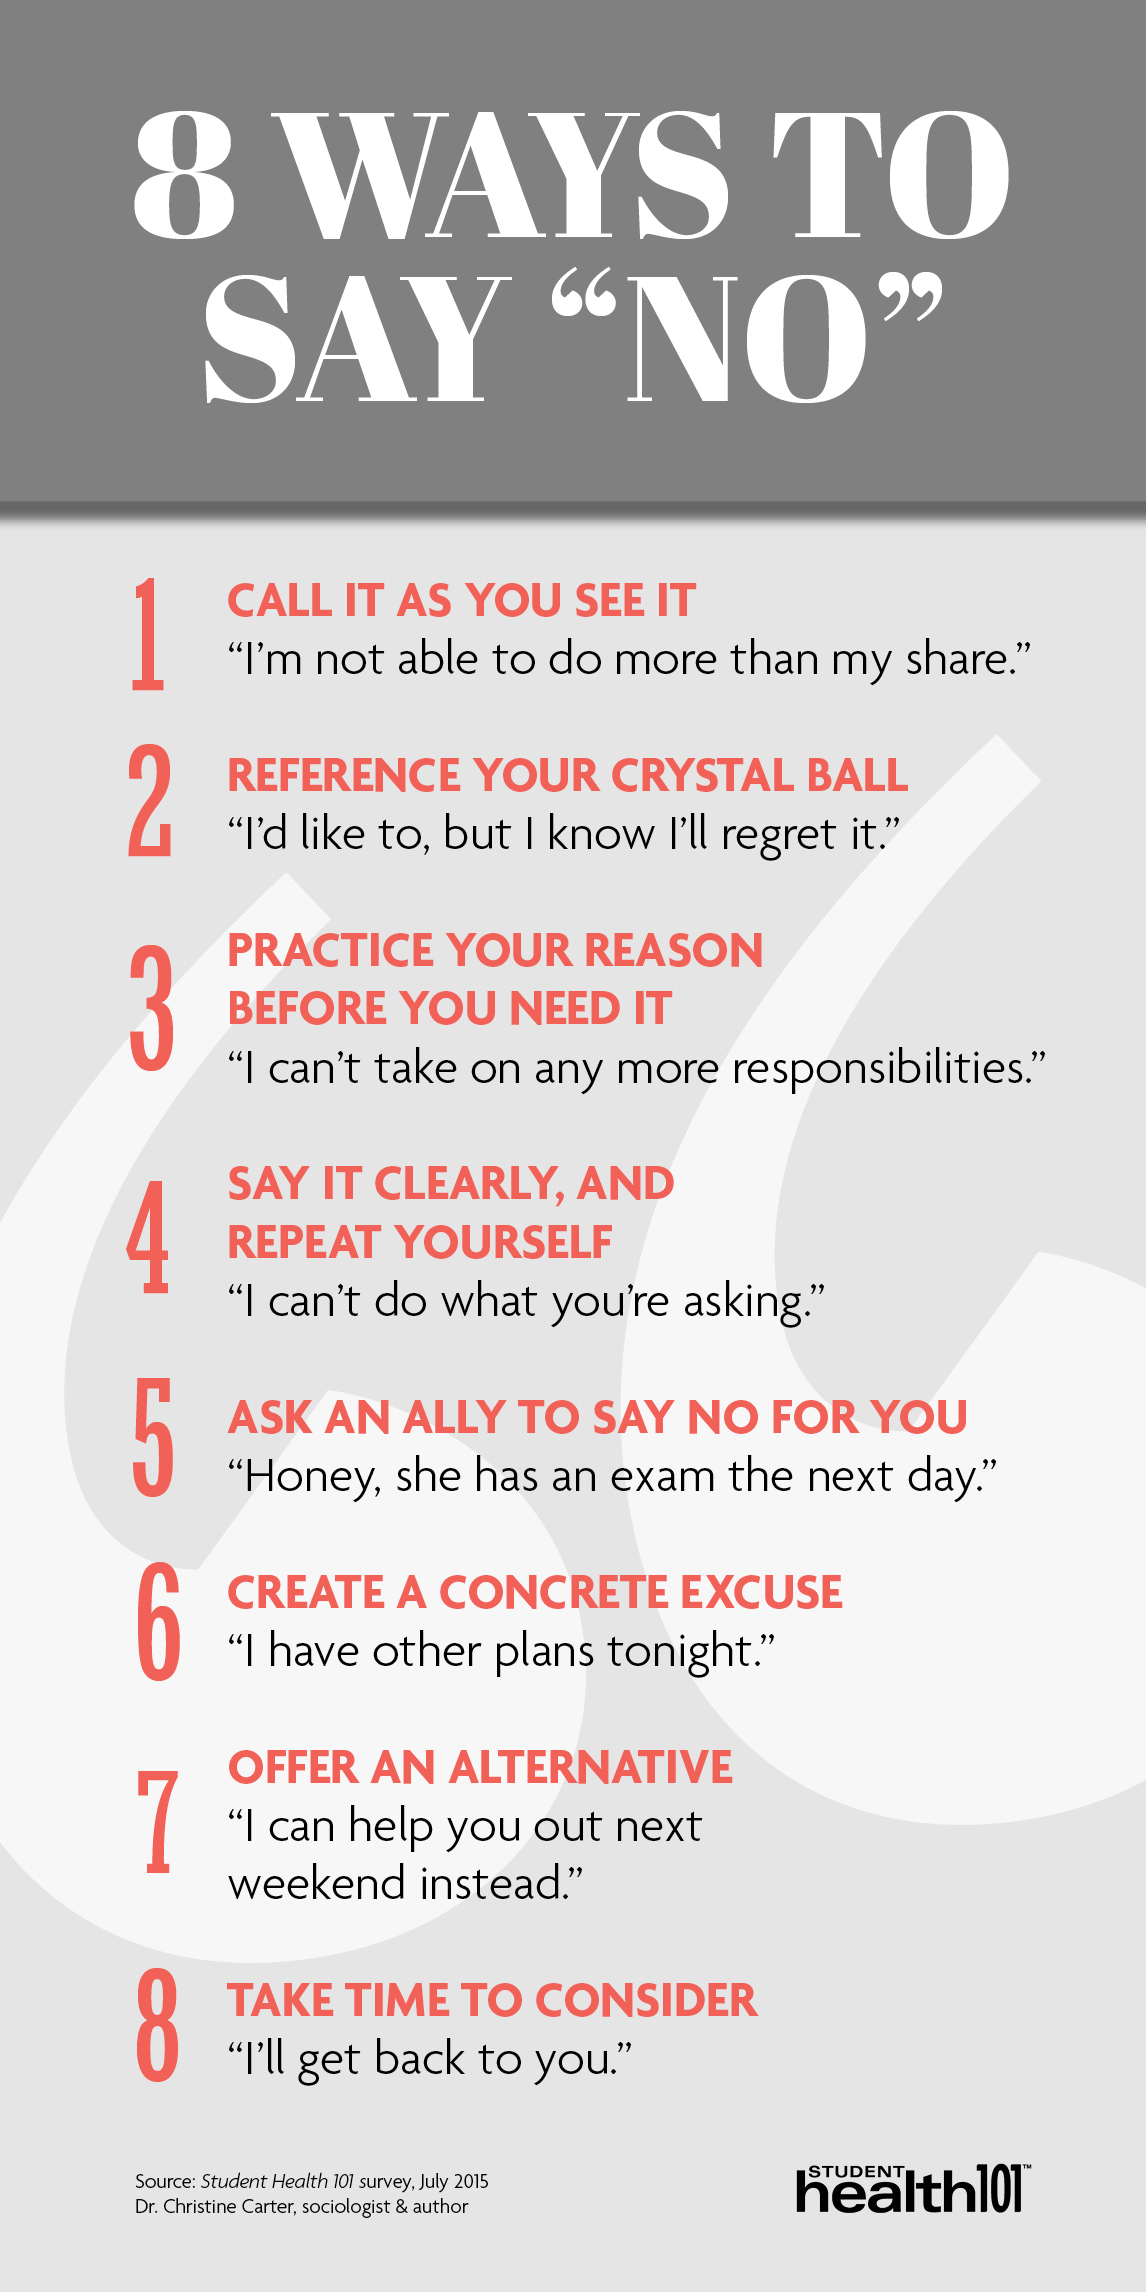 8 ways to say NO: 1. Call it as you see it. 2. Reference your crystal ball. 3. Practice your reason before you need it. 4. Say it clearly and repeat yourself. 5. Ask an ally to say no for you. 6. Create a concrete excuse. 7. Offer an alternative. 8. Take time to consider.